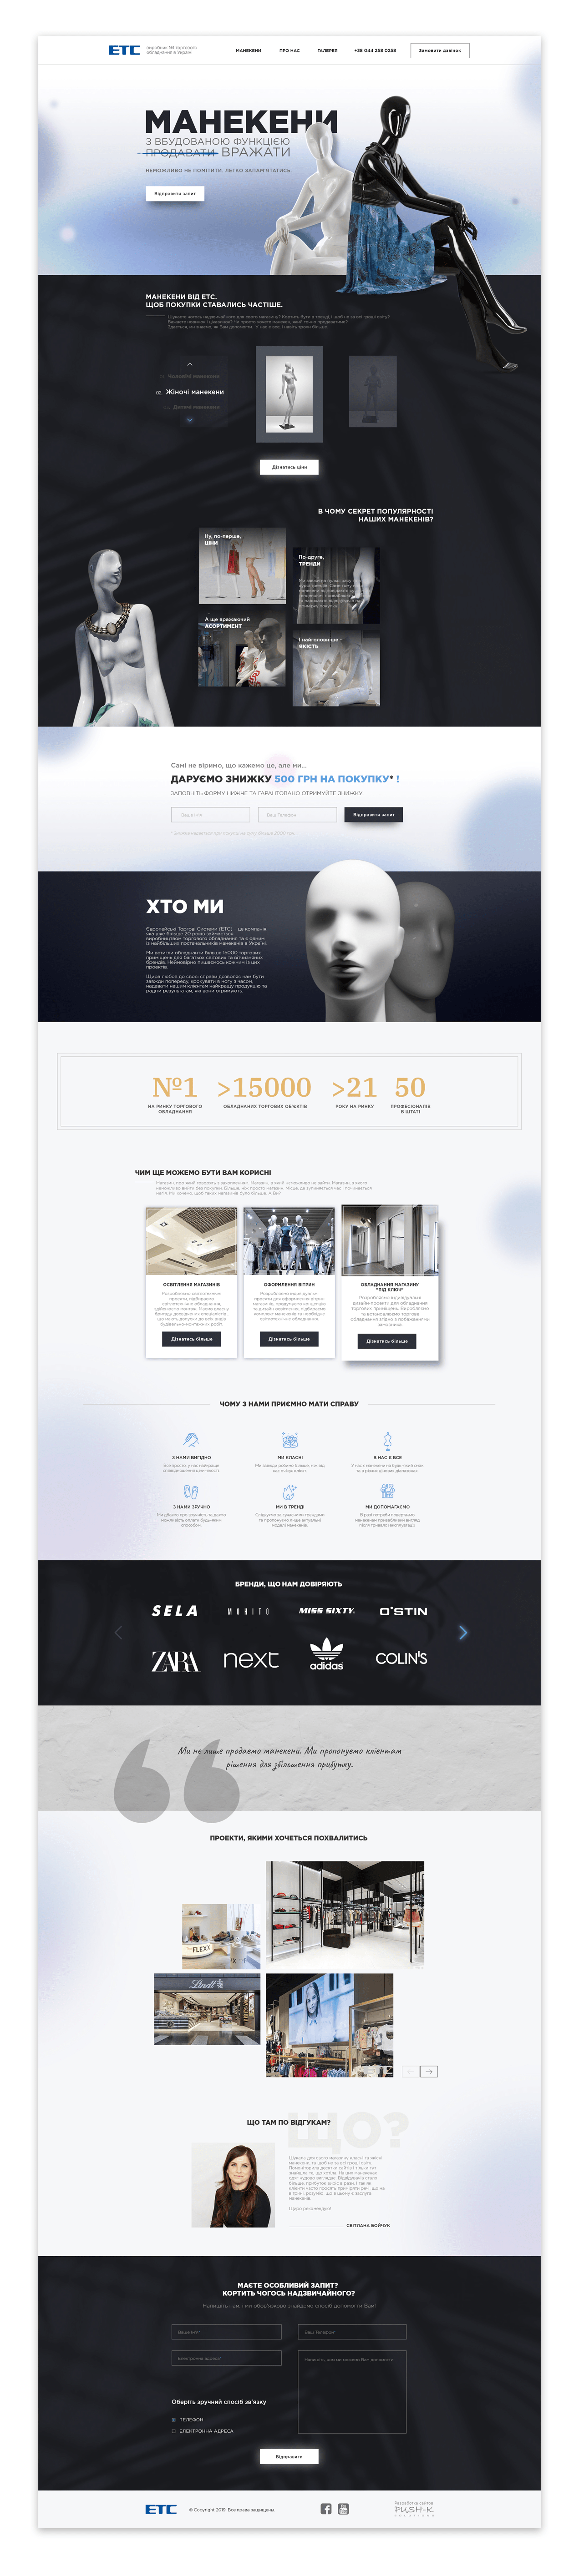 Landing page for selling mannequins